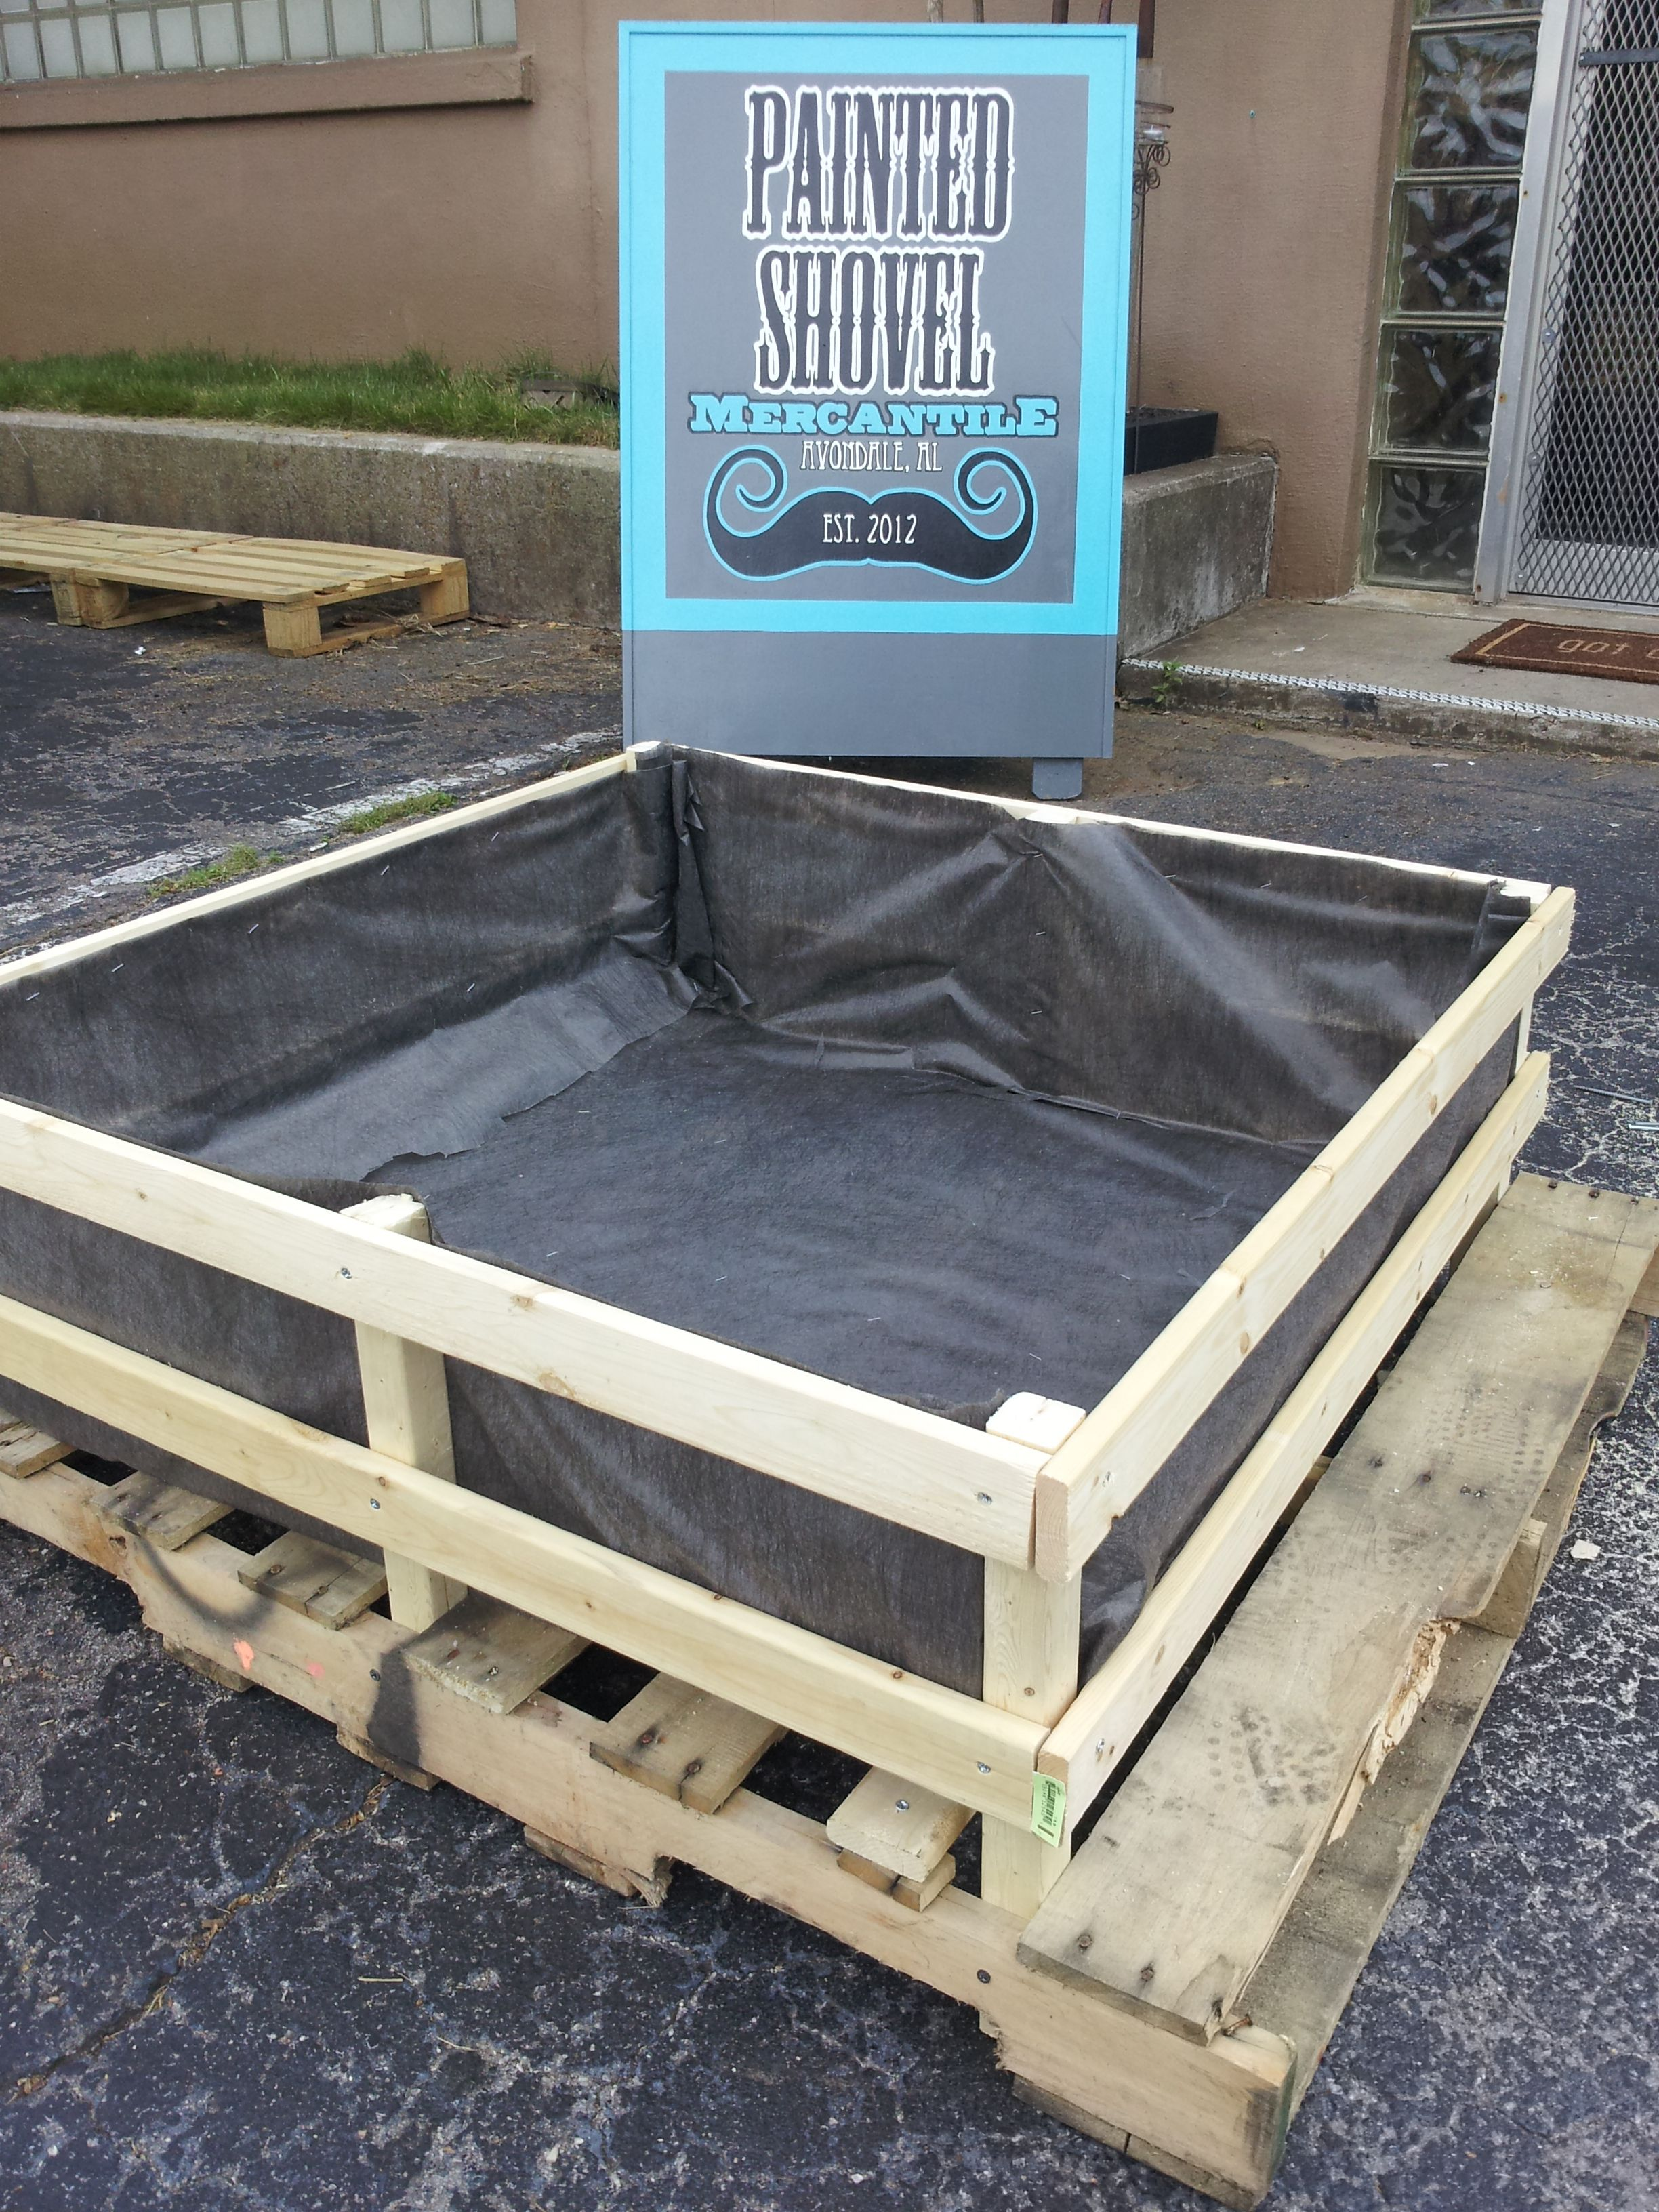 Raised Bed Gardens for sale at Painted Shovel Mercantile